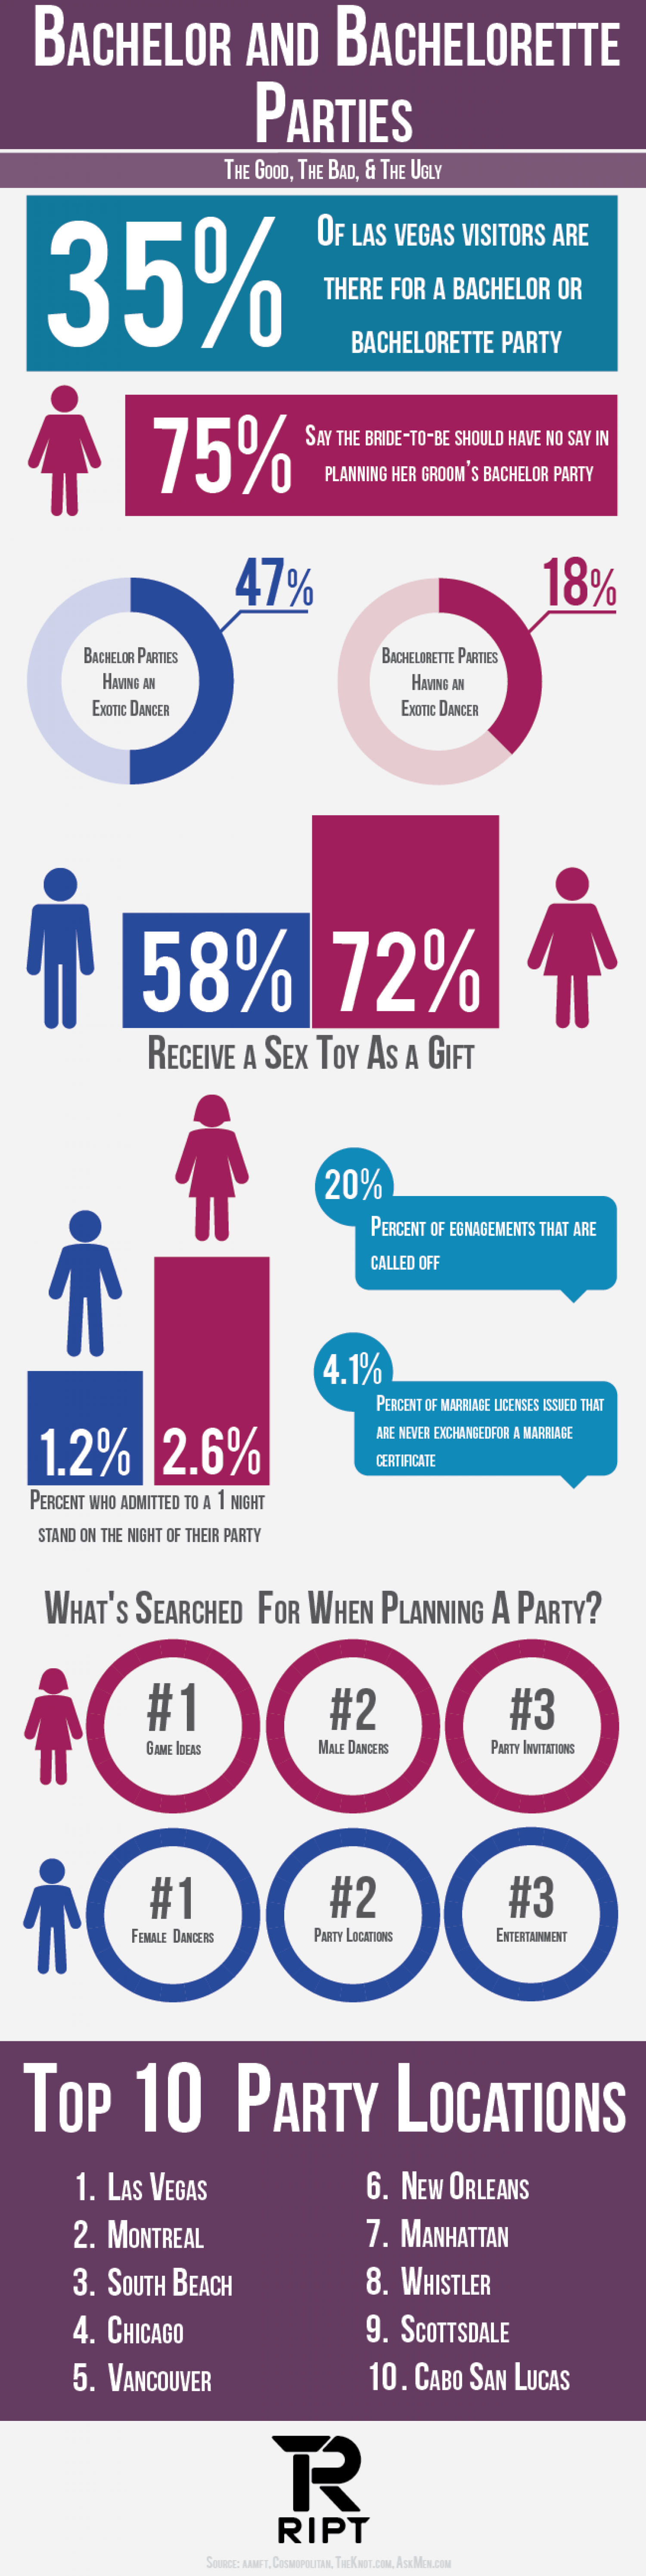 Bachelor and Bachelorette Party Facts Infographic